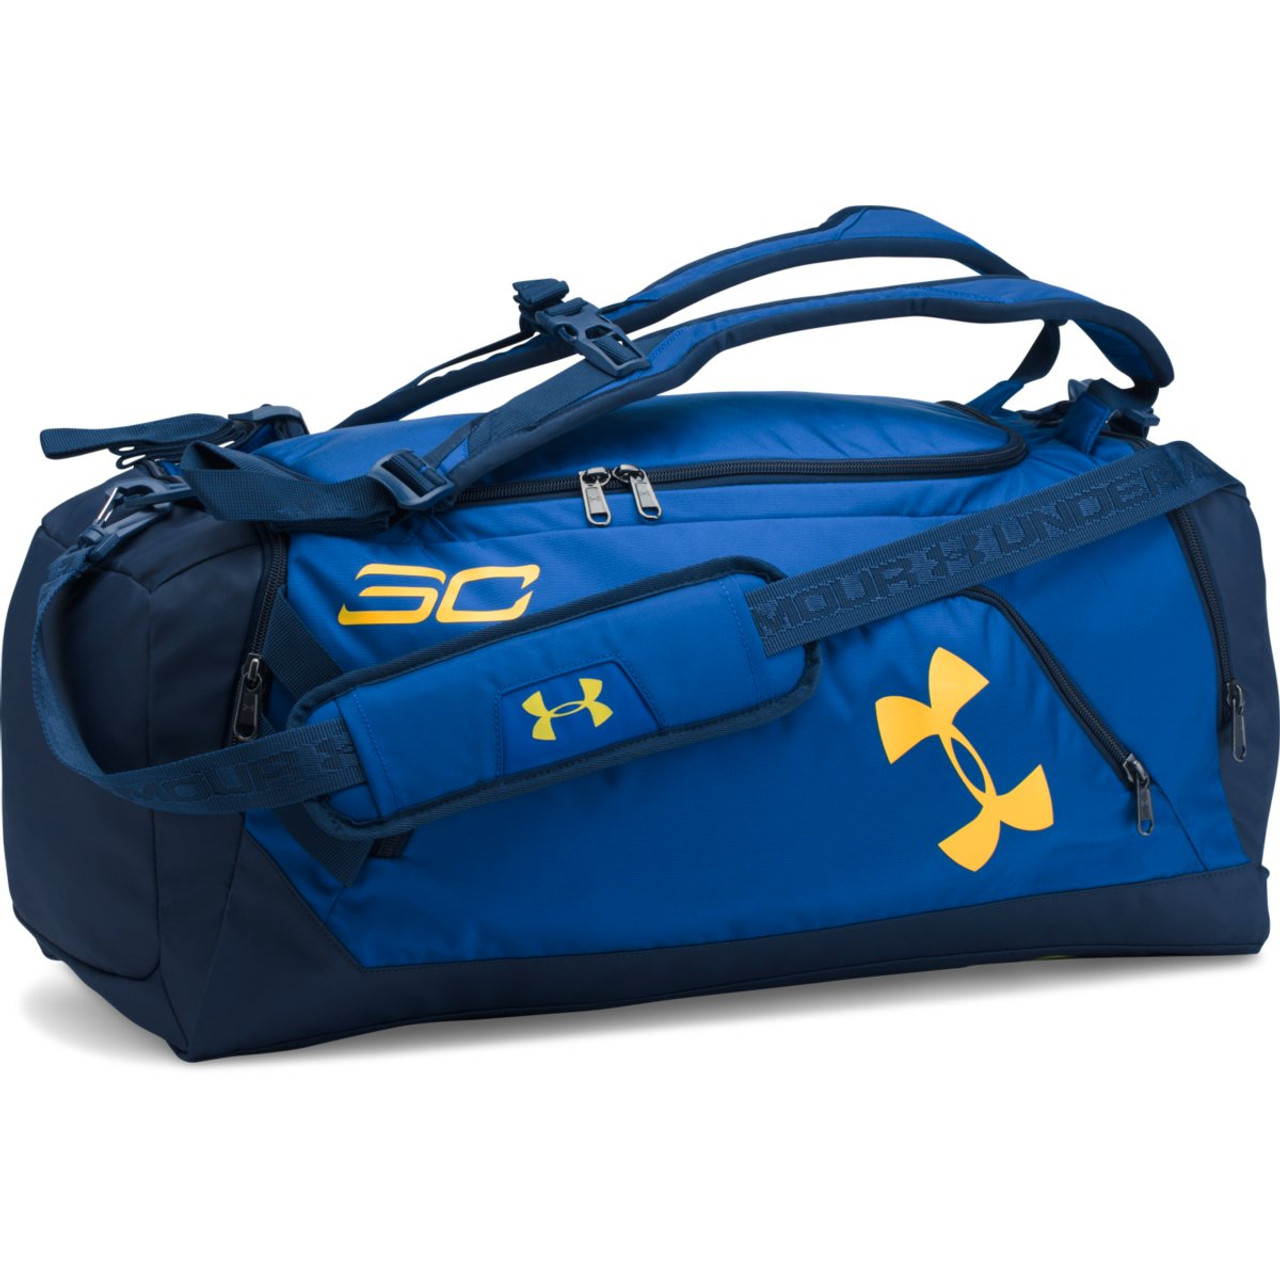 4a91b43bae Under Armour SC30 Storm Contain Duffle Basketball Bag - Sieverts Sporting  Goods